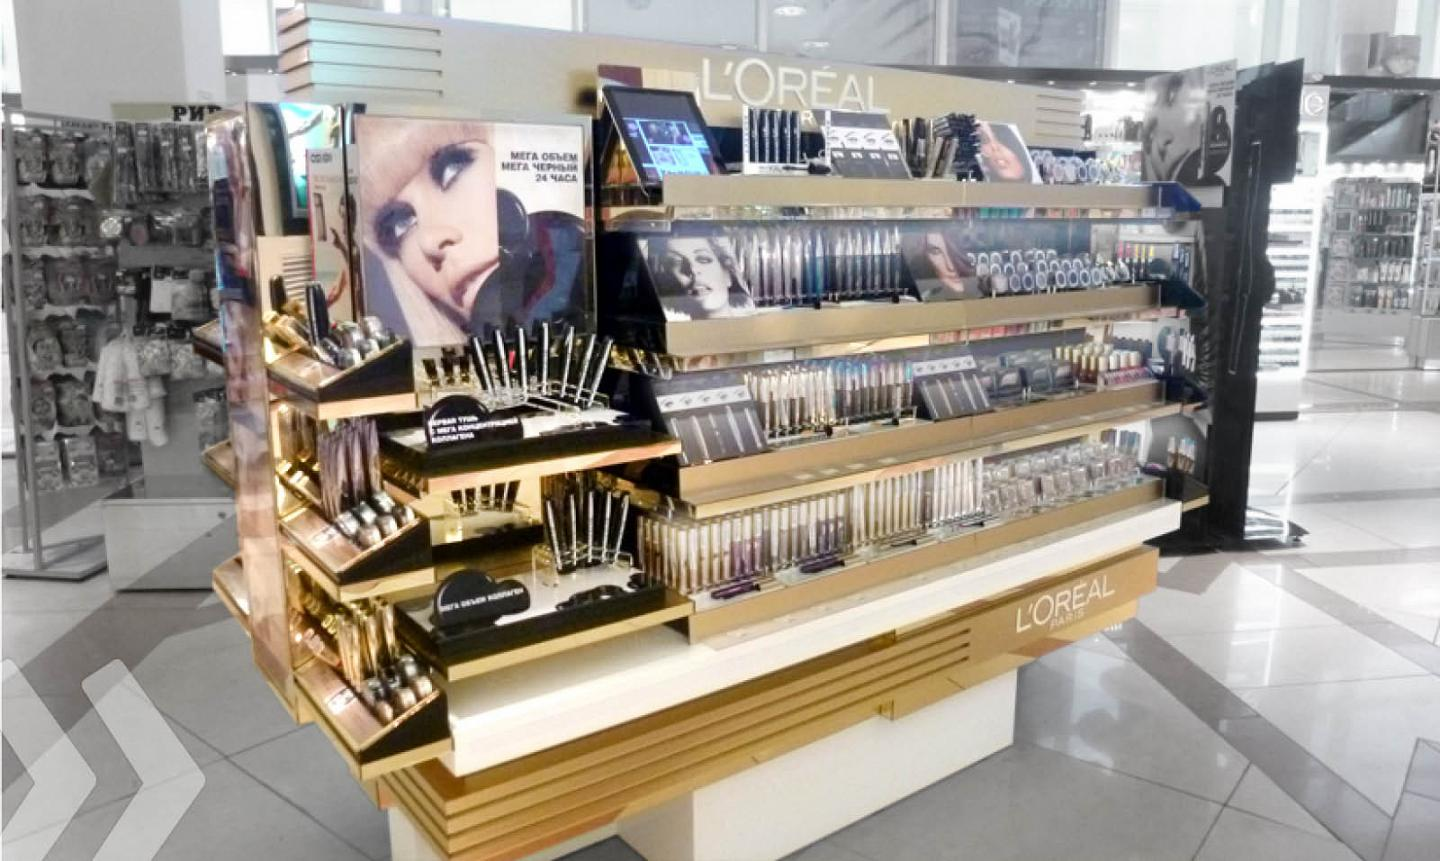 loreal group With over 130 molecules developed over the past 40 years, the group is  exceptional in its ability to patent major active ingredients well in advance of  competitors.